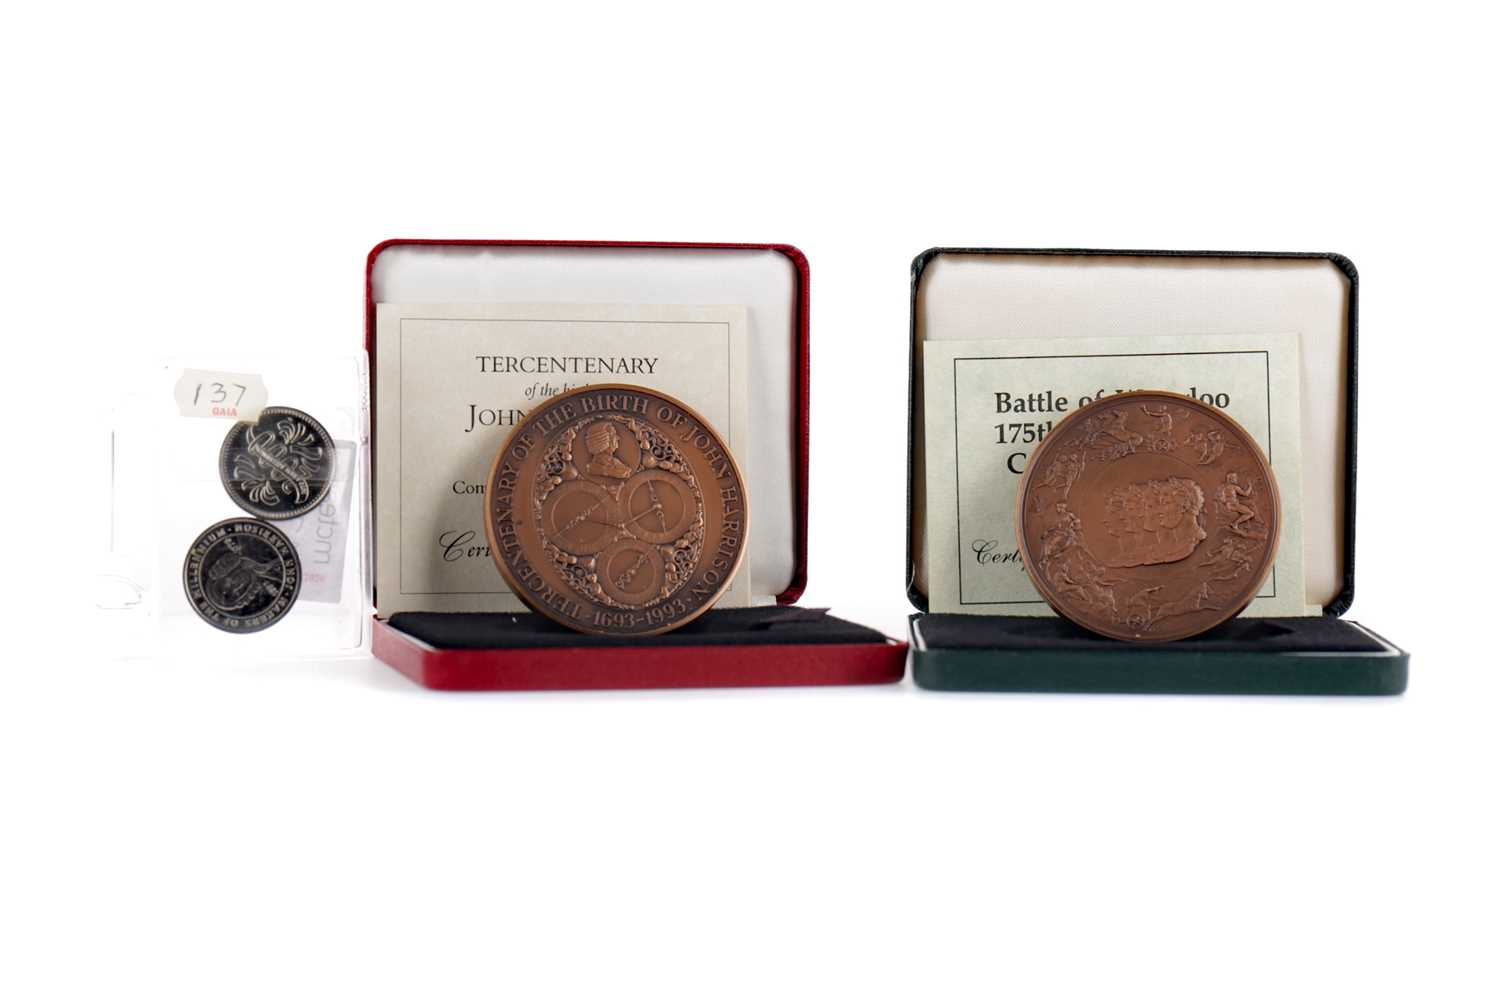 Lot 37 - A BATTLE OF WATERLOO COMMEMORATIVE BRONZE MEDAL BY THE ROYAL MINT